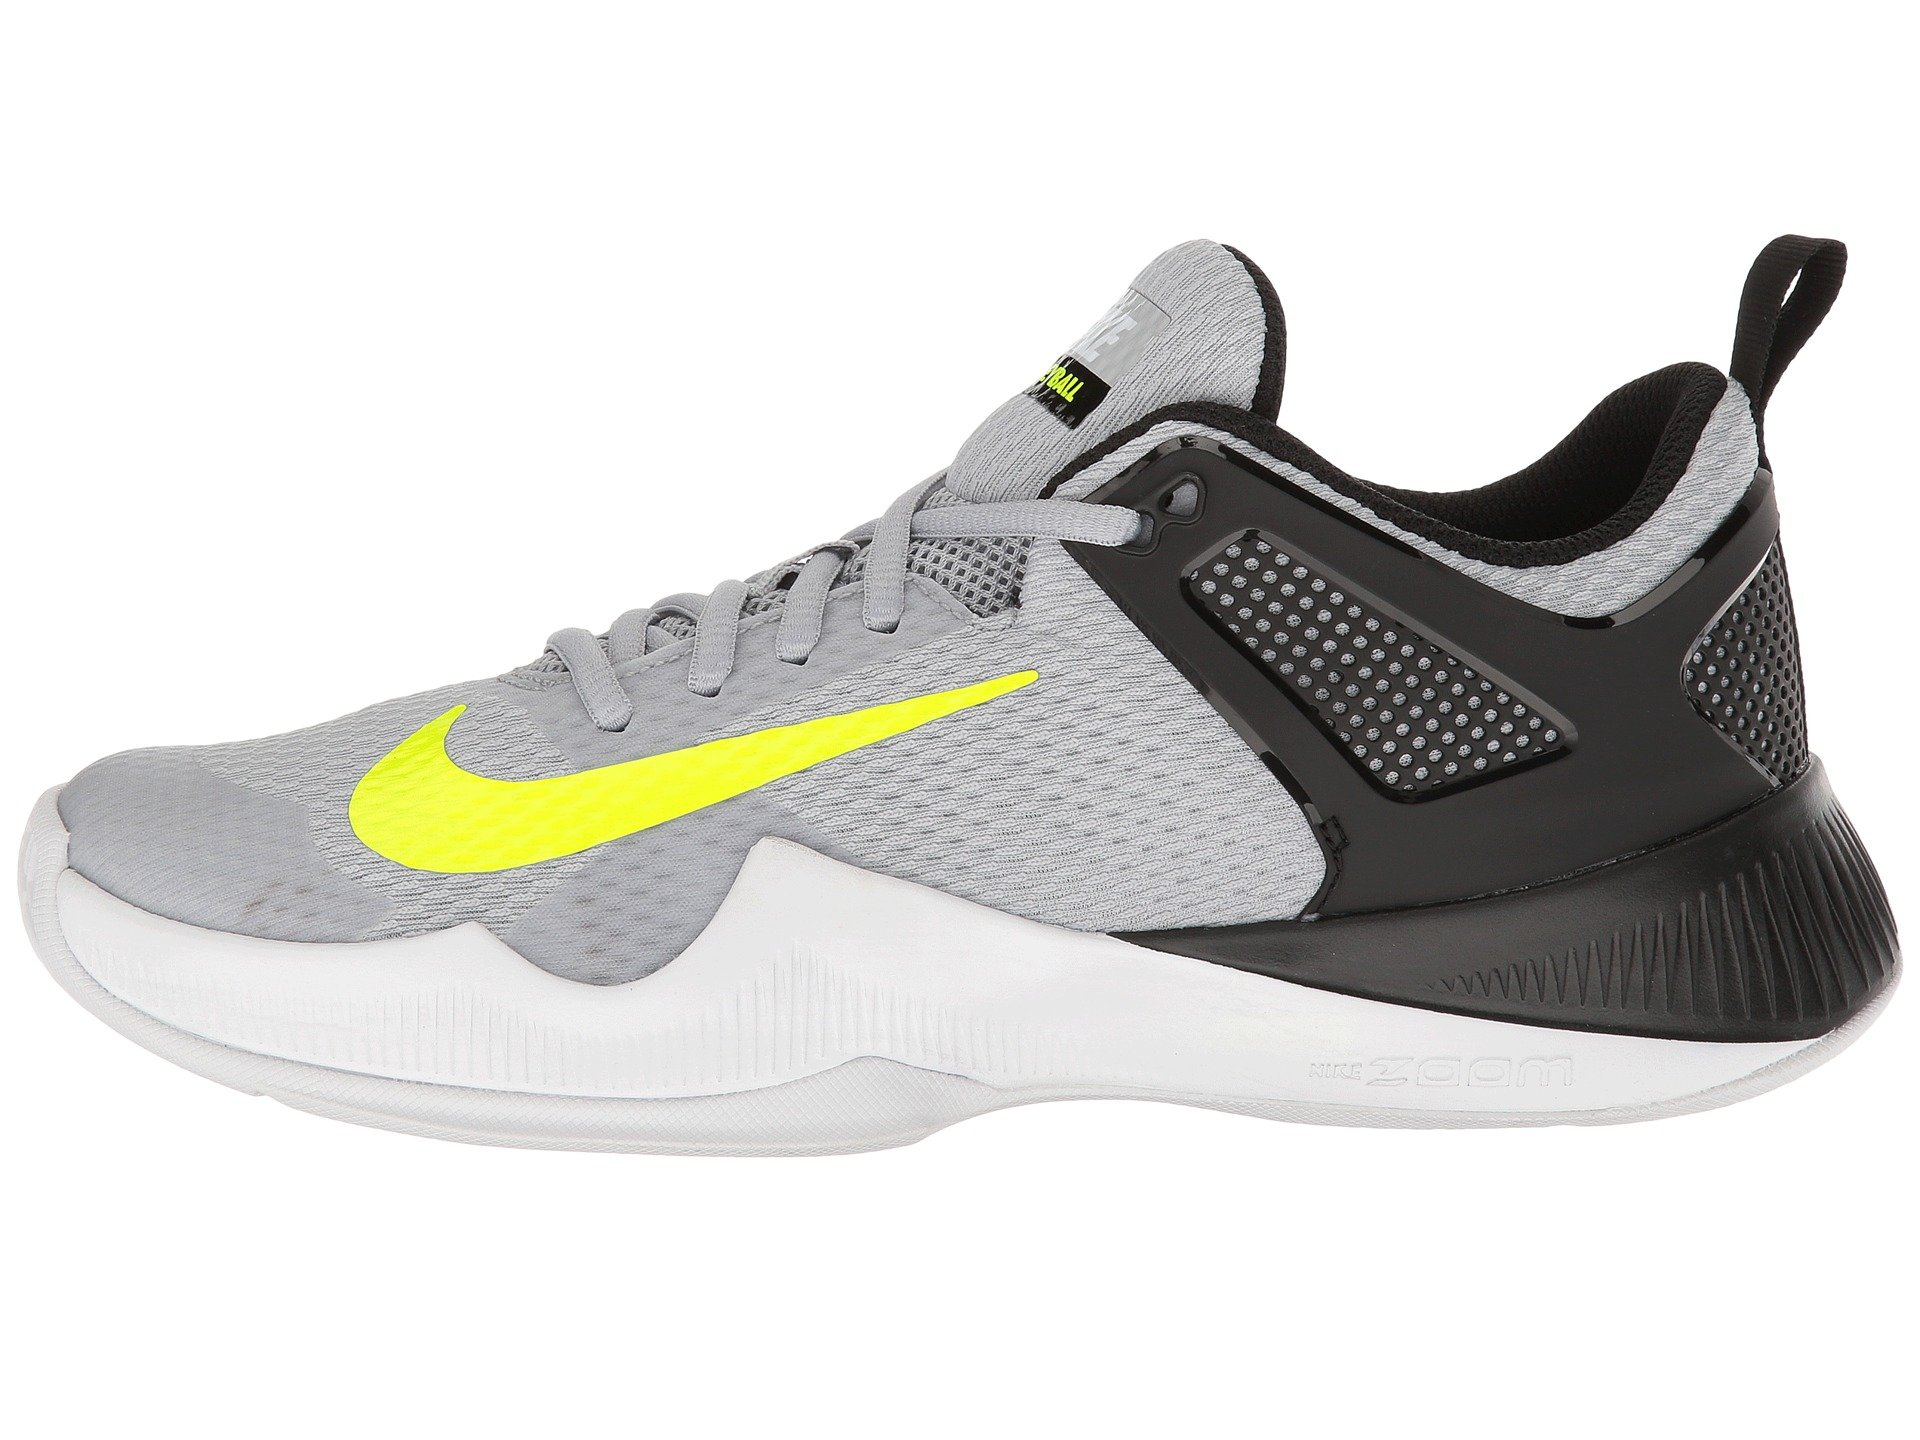 NIKE Womens Air Zoom Hyperace Shoe, Wolf Grey/Volt-Black, 11 B(M) US